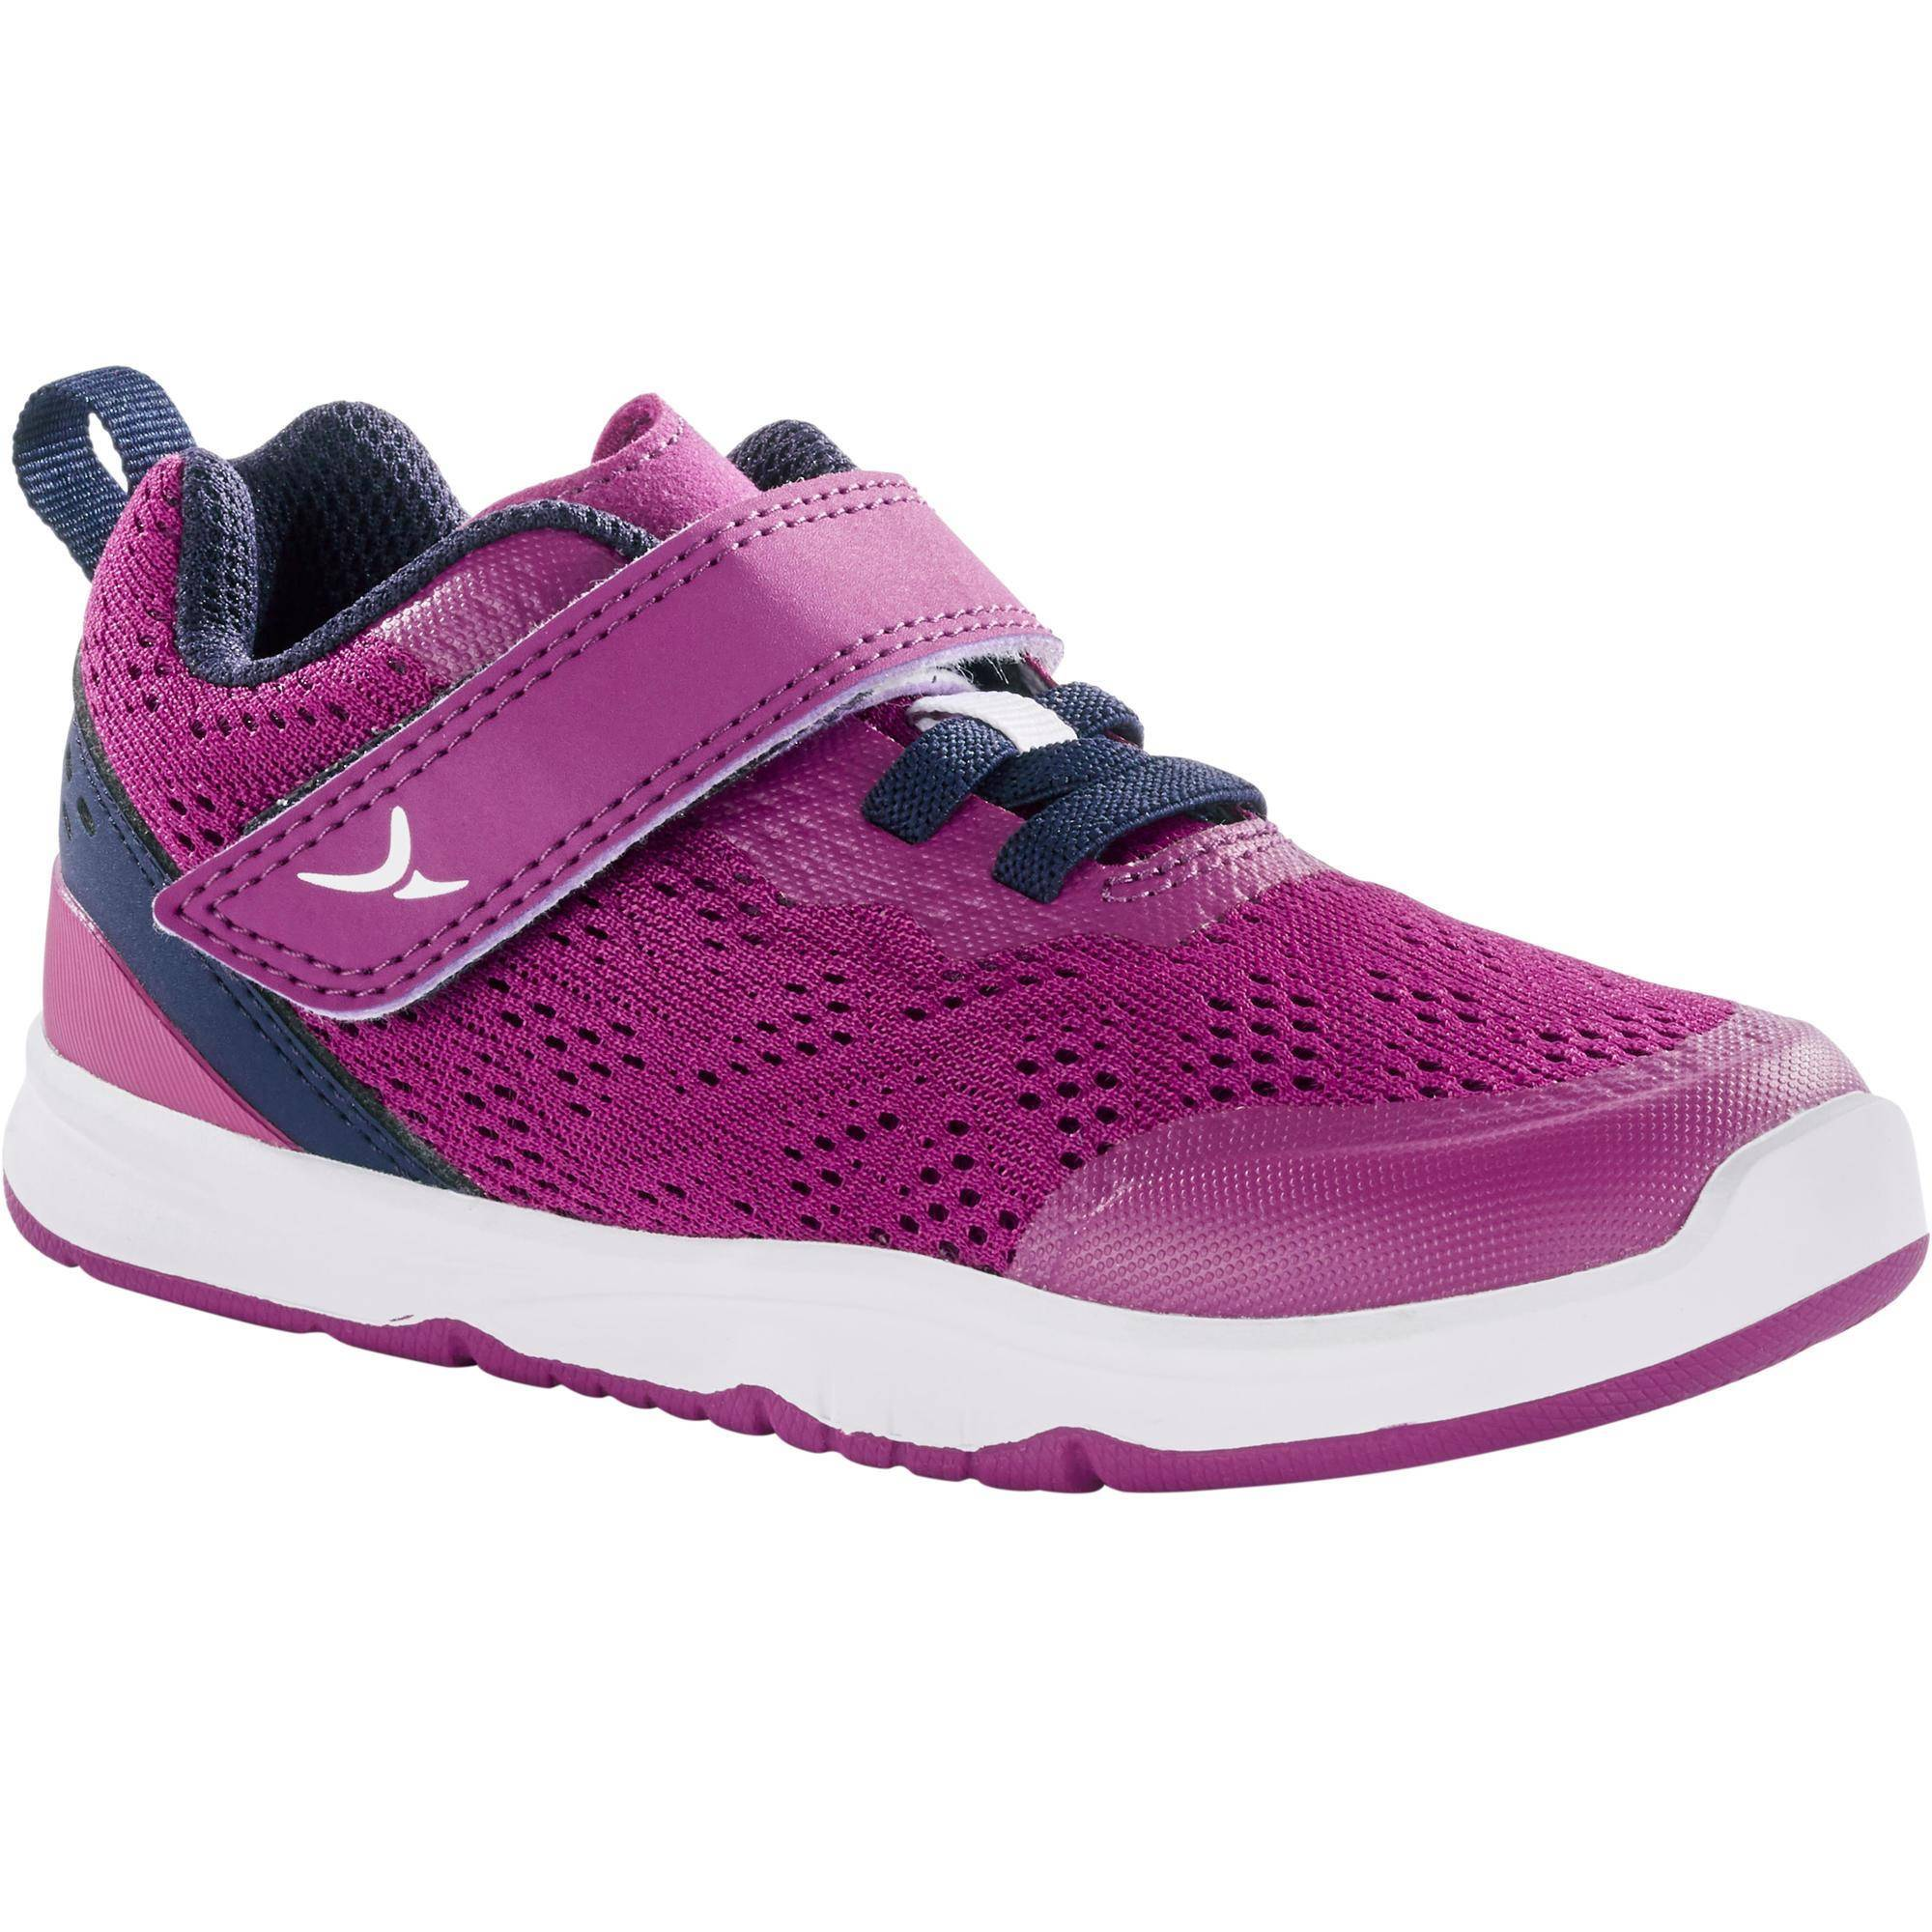 Domyos Chaussures 570 I MOVE BREATH++ GYM VIOLET - Domyos